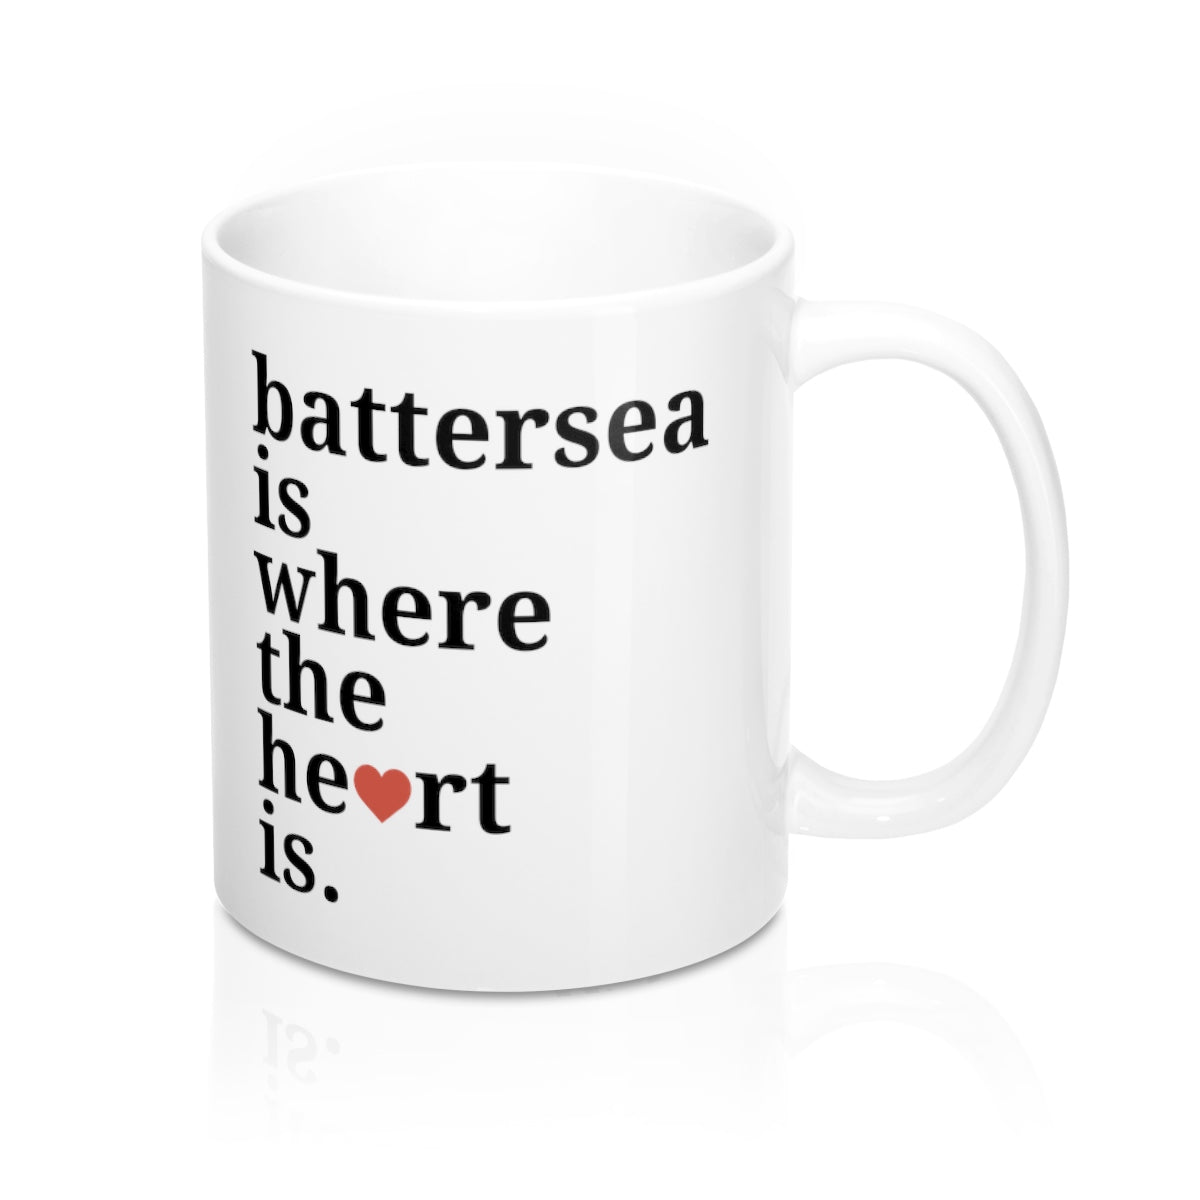 Battersea Is Where The Heart Is Mug